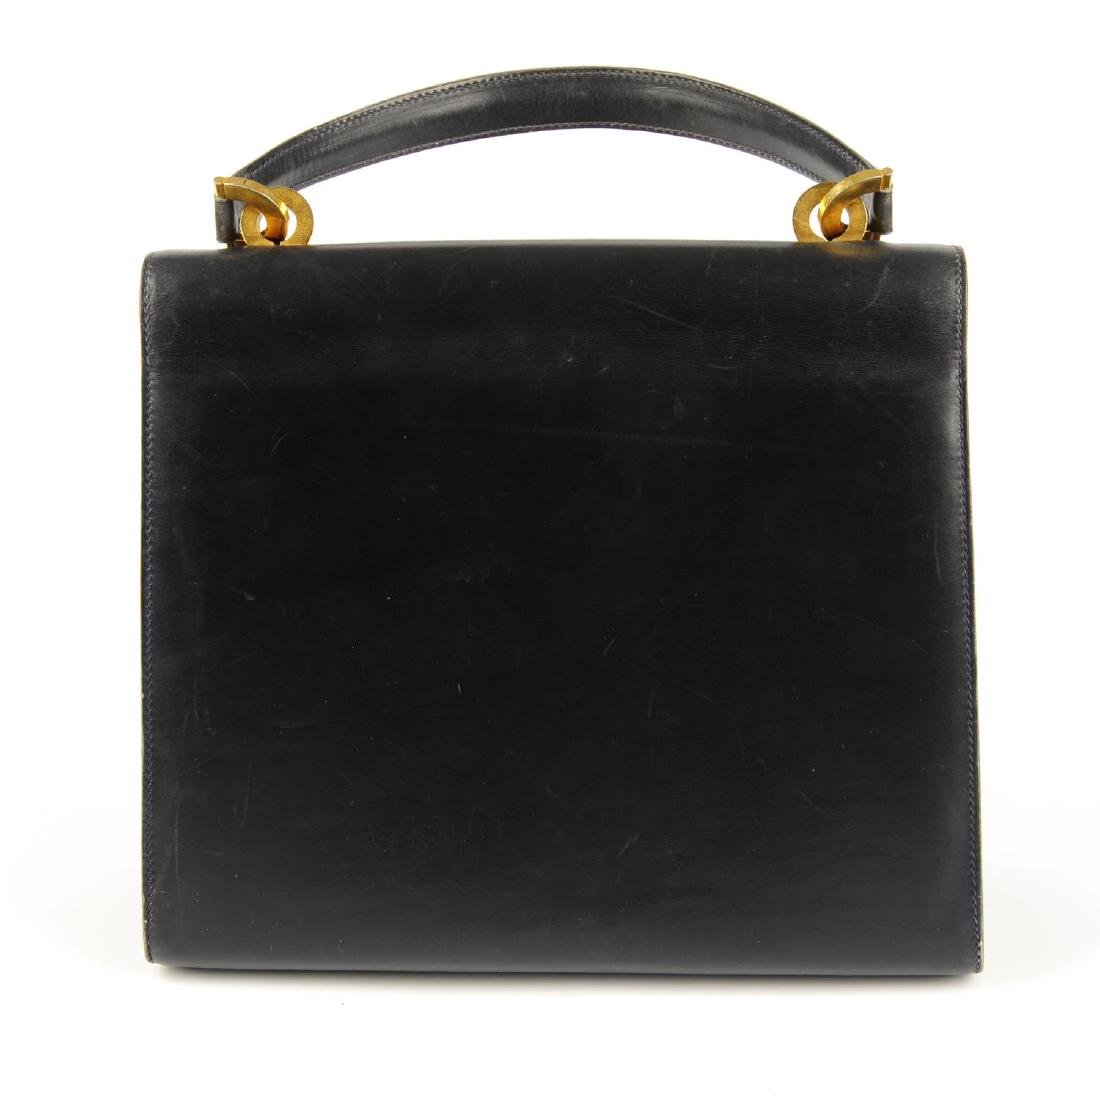 GUCCI - a vintage leather box handbag. Designed with a - 2